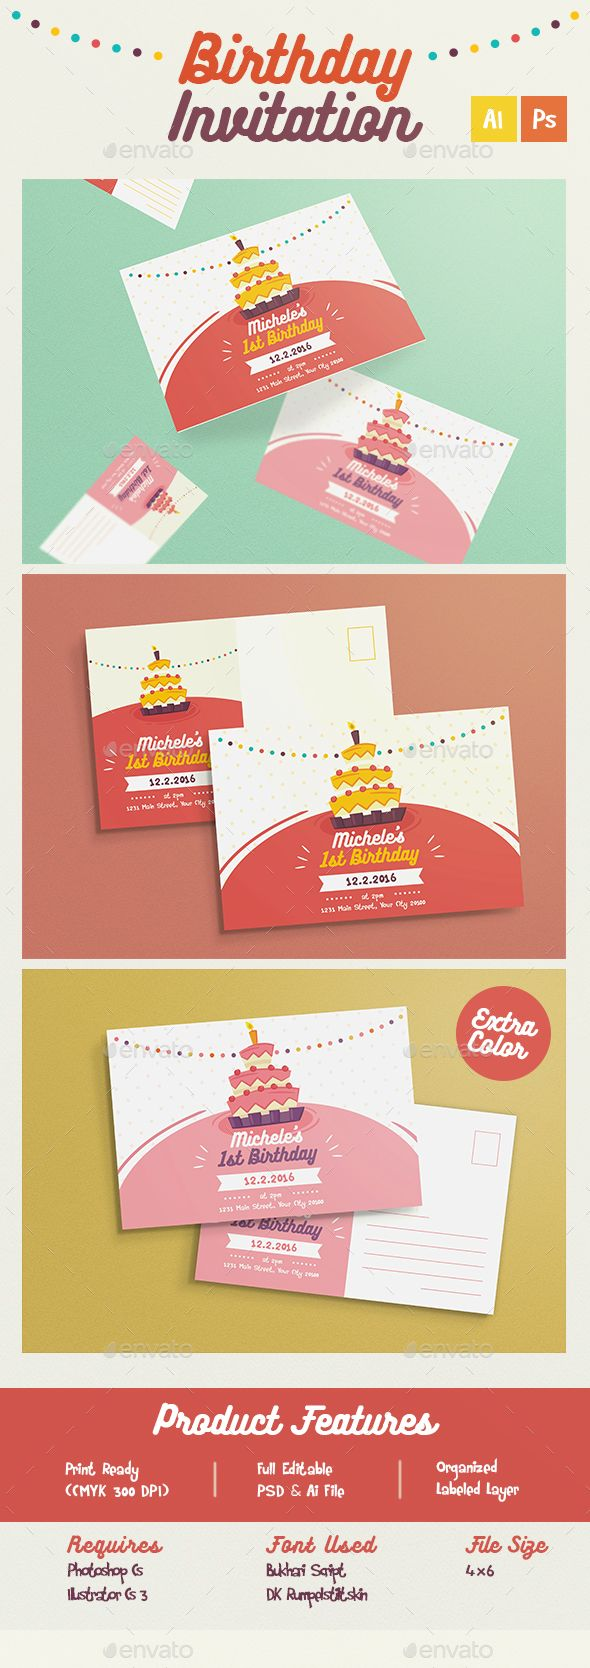 Colorful birthday invitation card template psd vector ai design colorful birthday invitation card template psd vector ai design download httpgraphicriveritemcolorful birthday invitation 14065079refksioks stopboris Image collections